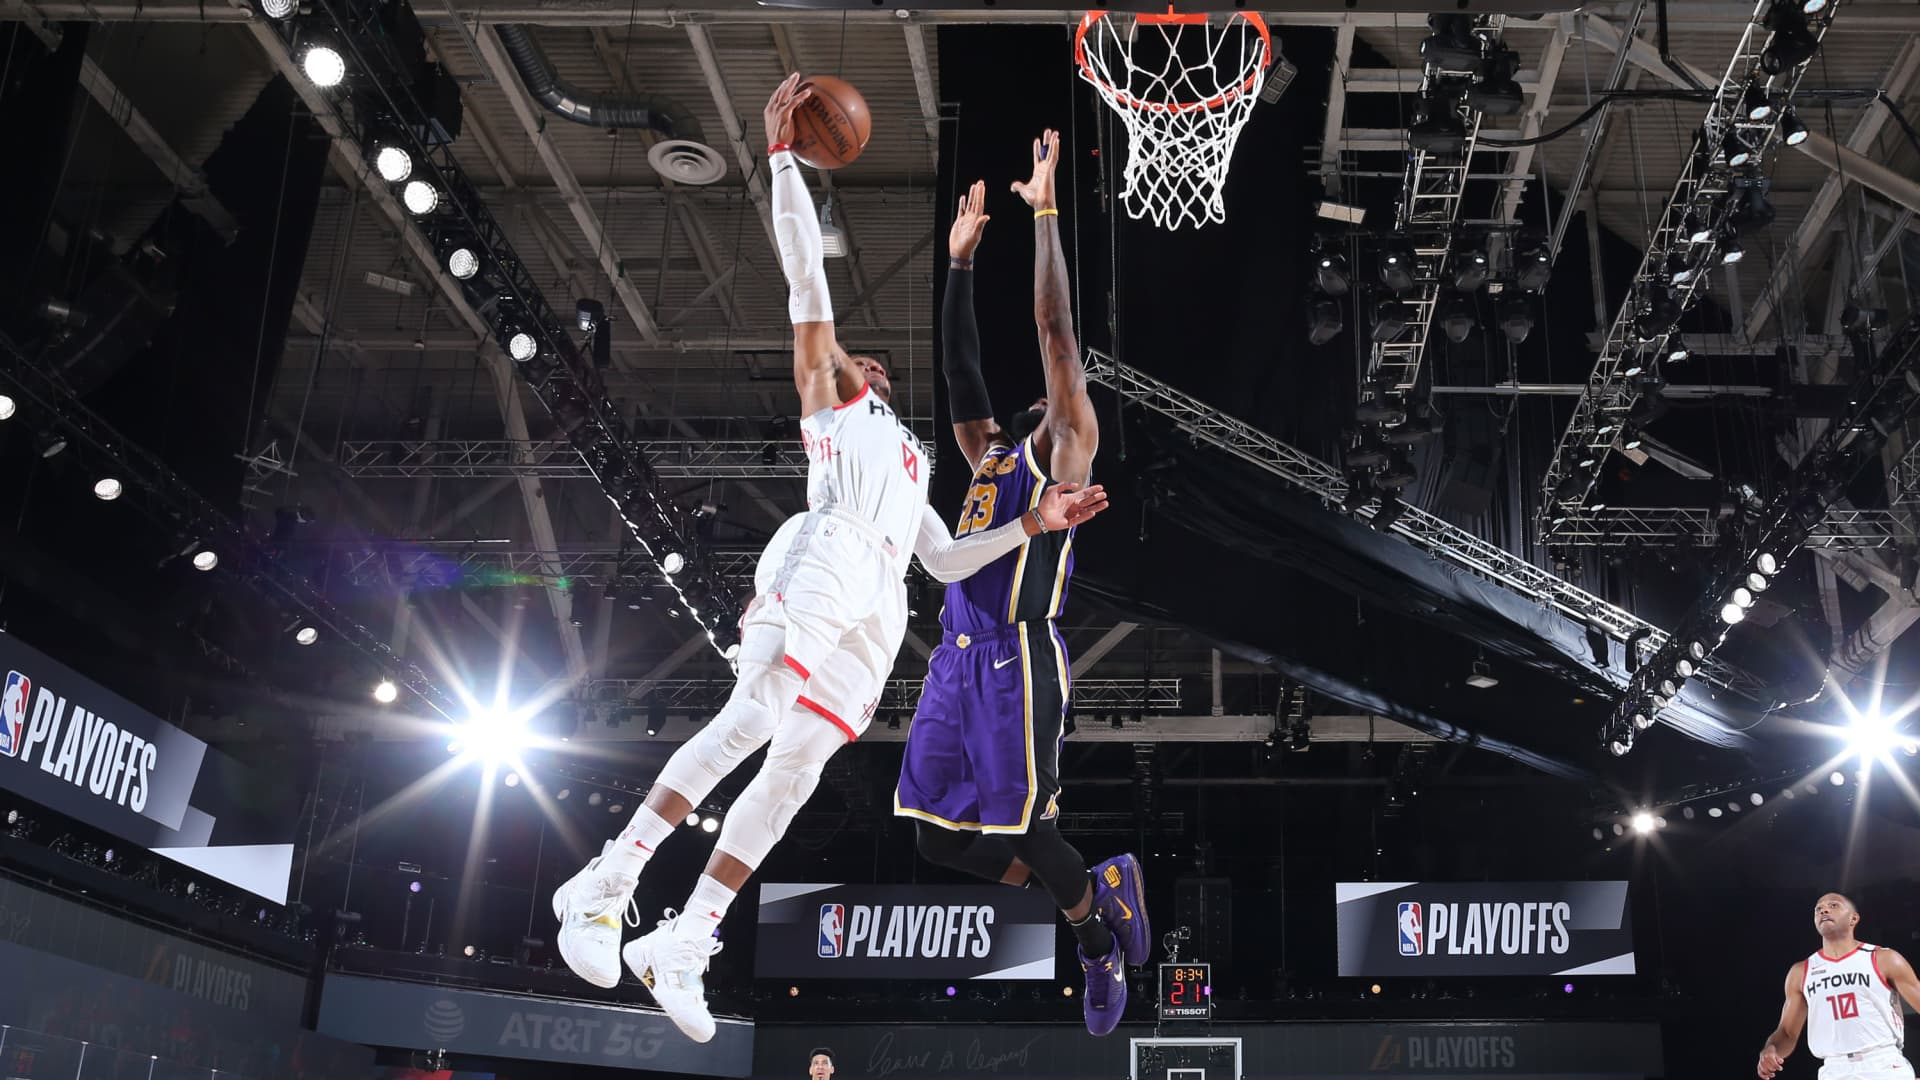 Russell Westbrook #0 of the Houston Rockets dunks the ball against the Los Angeles Lakers during Game One of the Western Conference SemiFinals of the NBA Playoffs on September 4, 2020 at AdventHealth Arena in Orlando, Florida.